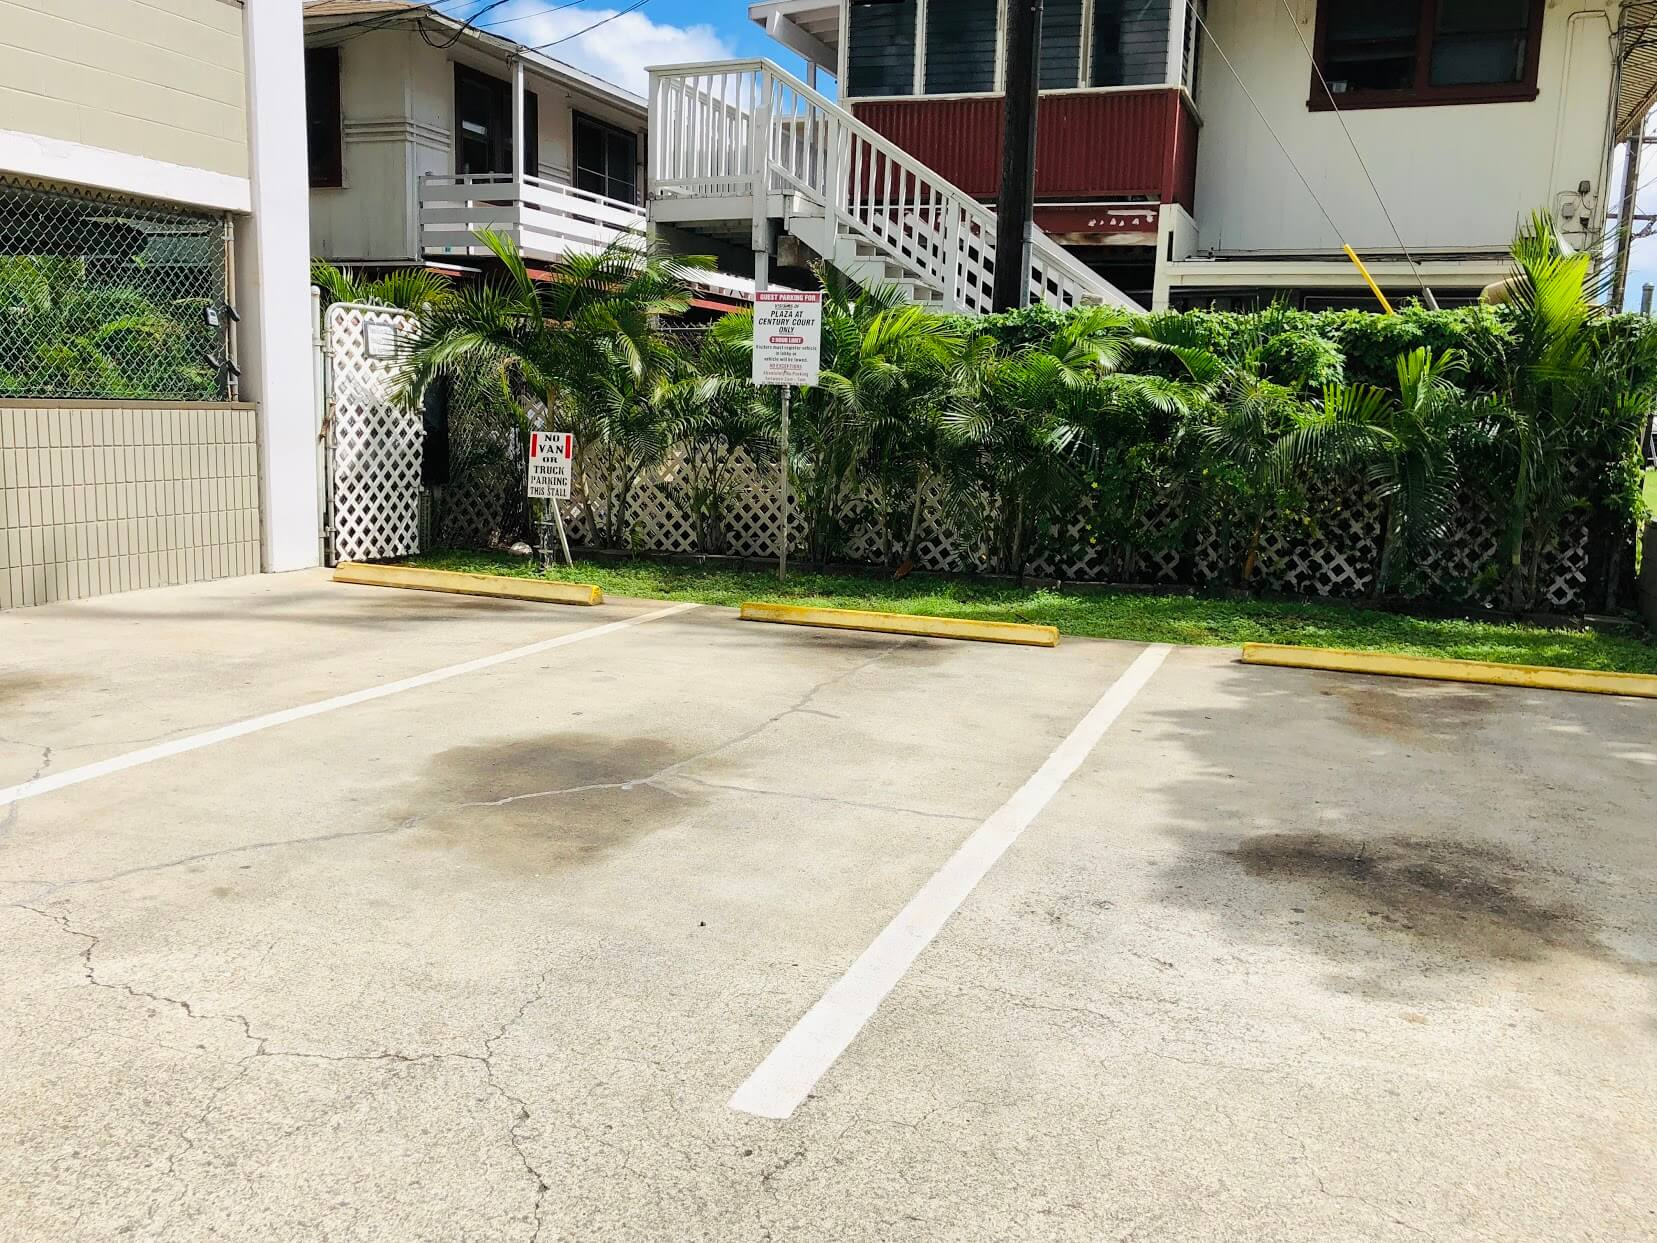 Plaza at Century Courtの駐車場